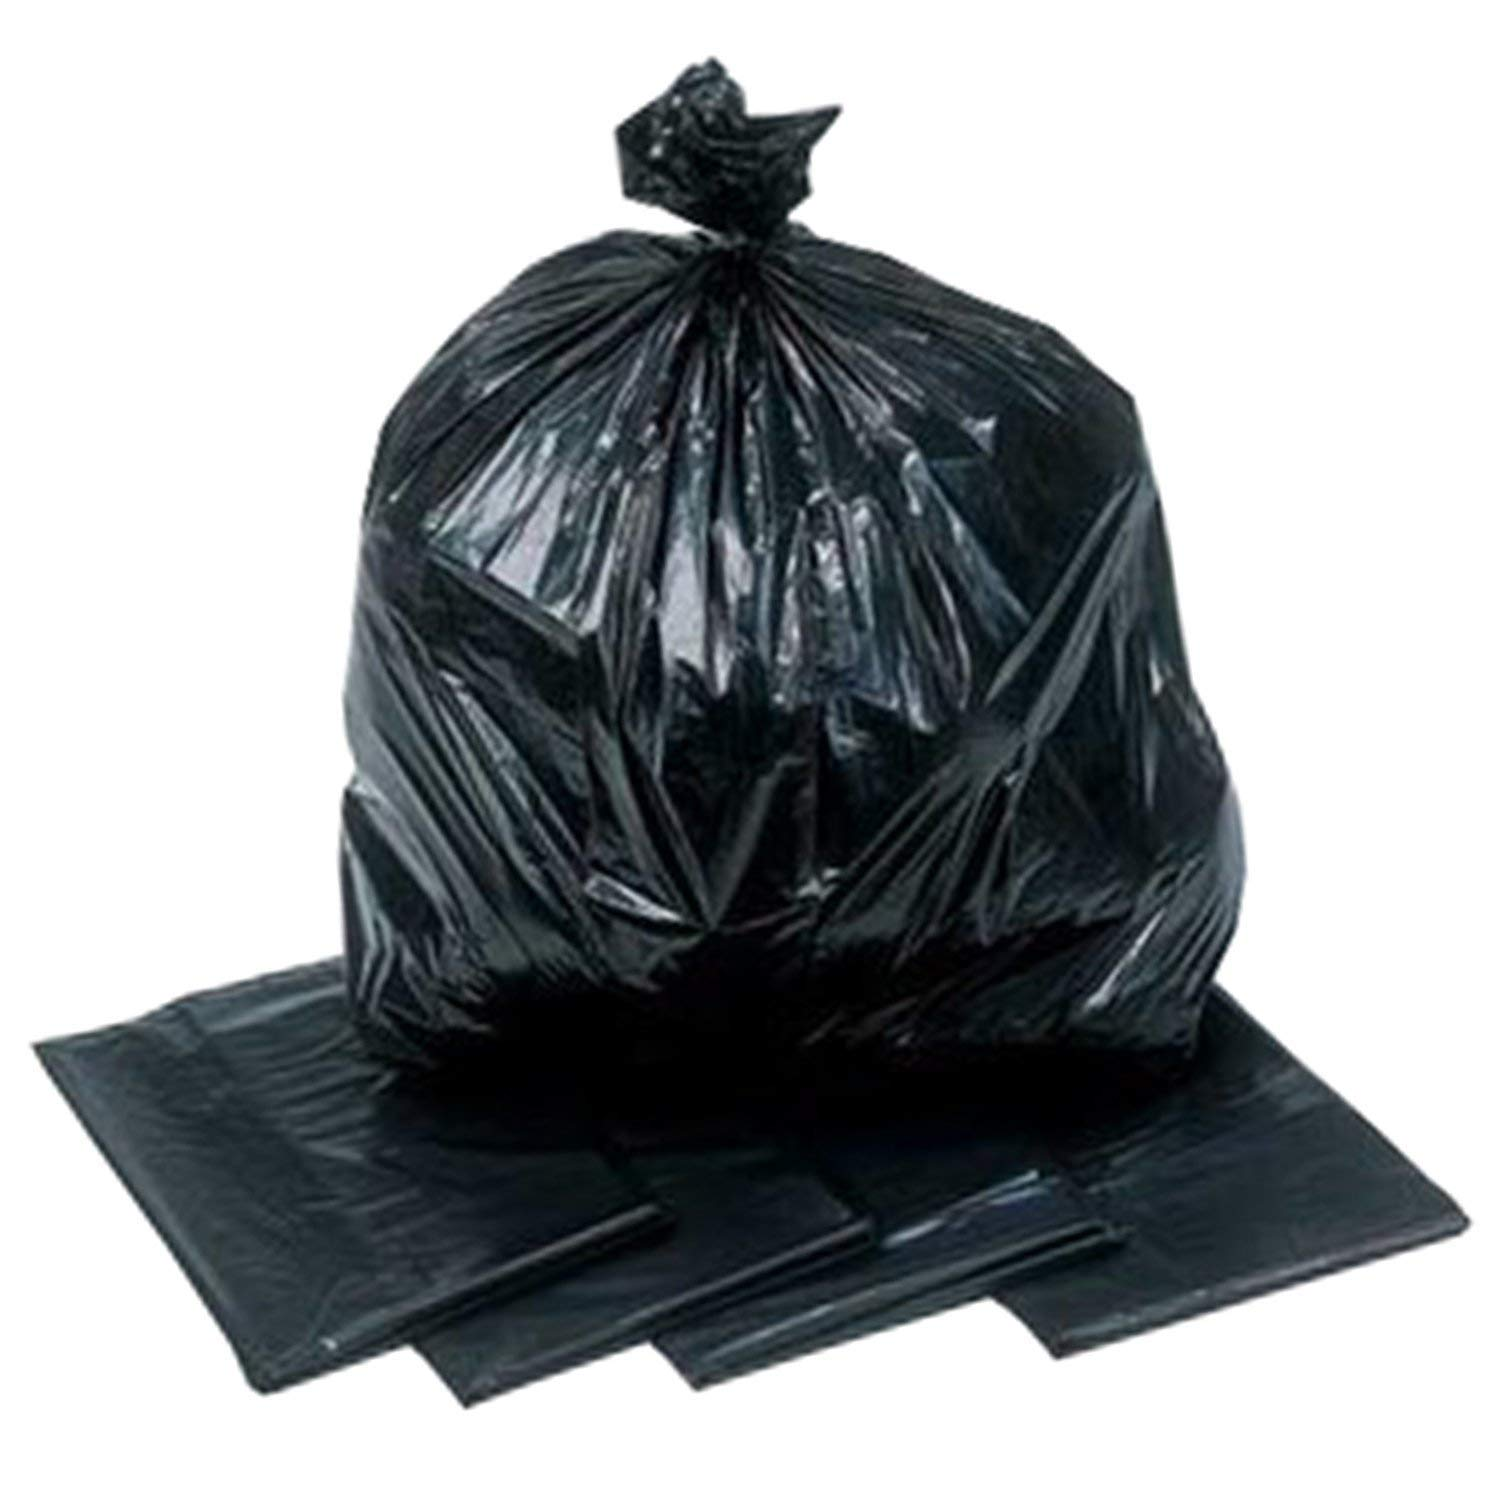 200 Large Black Plastic Bin Refuse Bags Sacks Liners Strong Heavy Duty 18x29x39/""